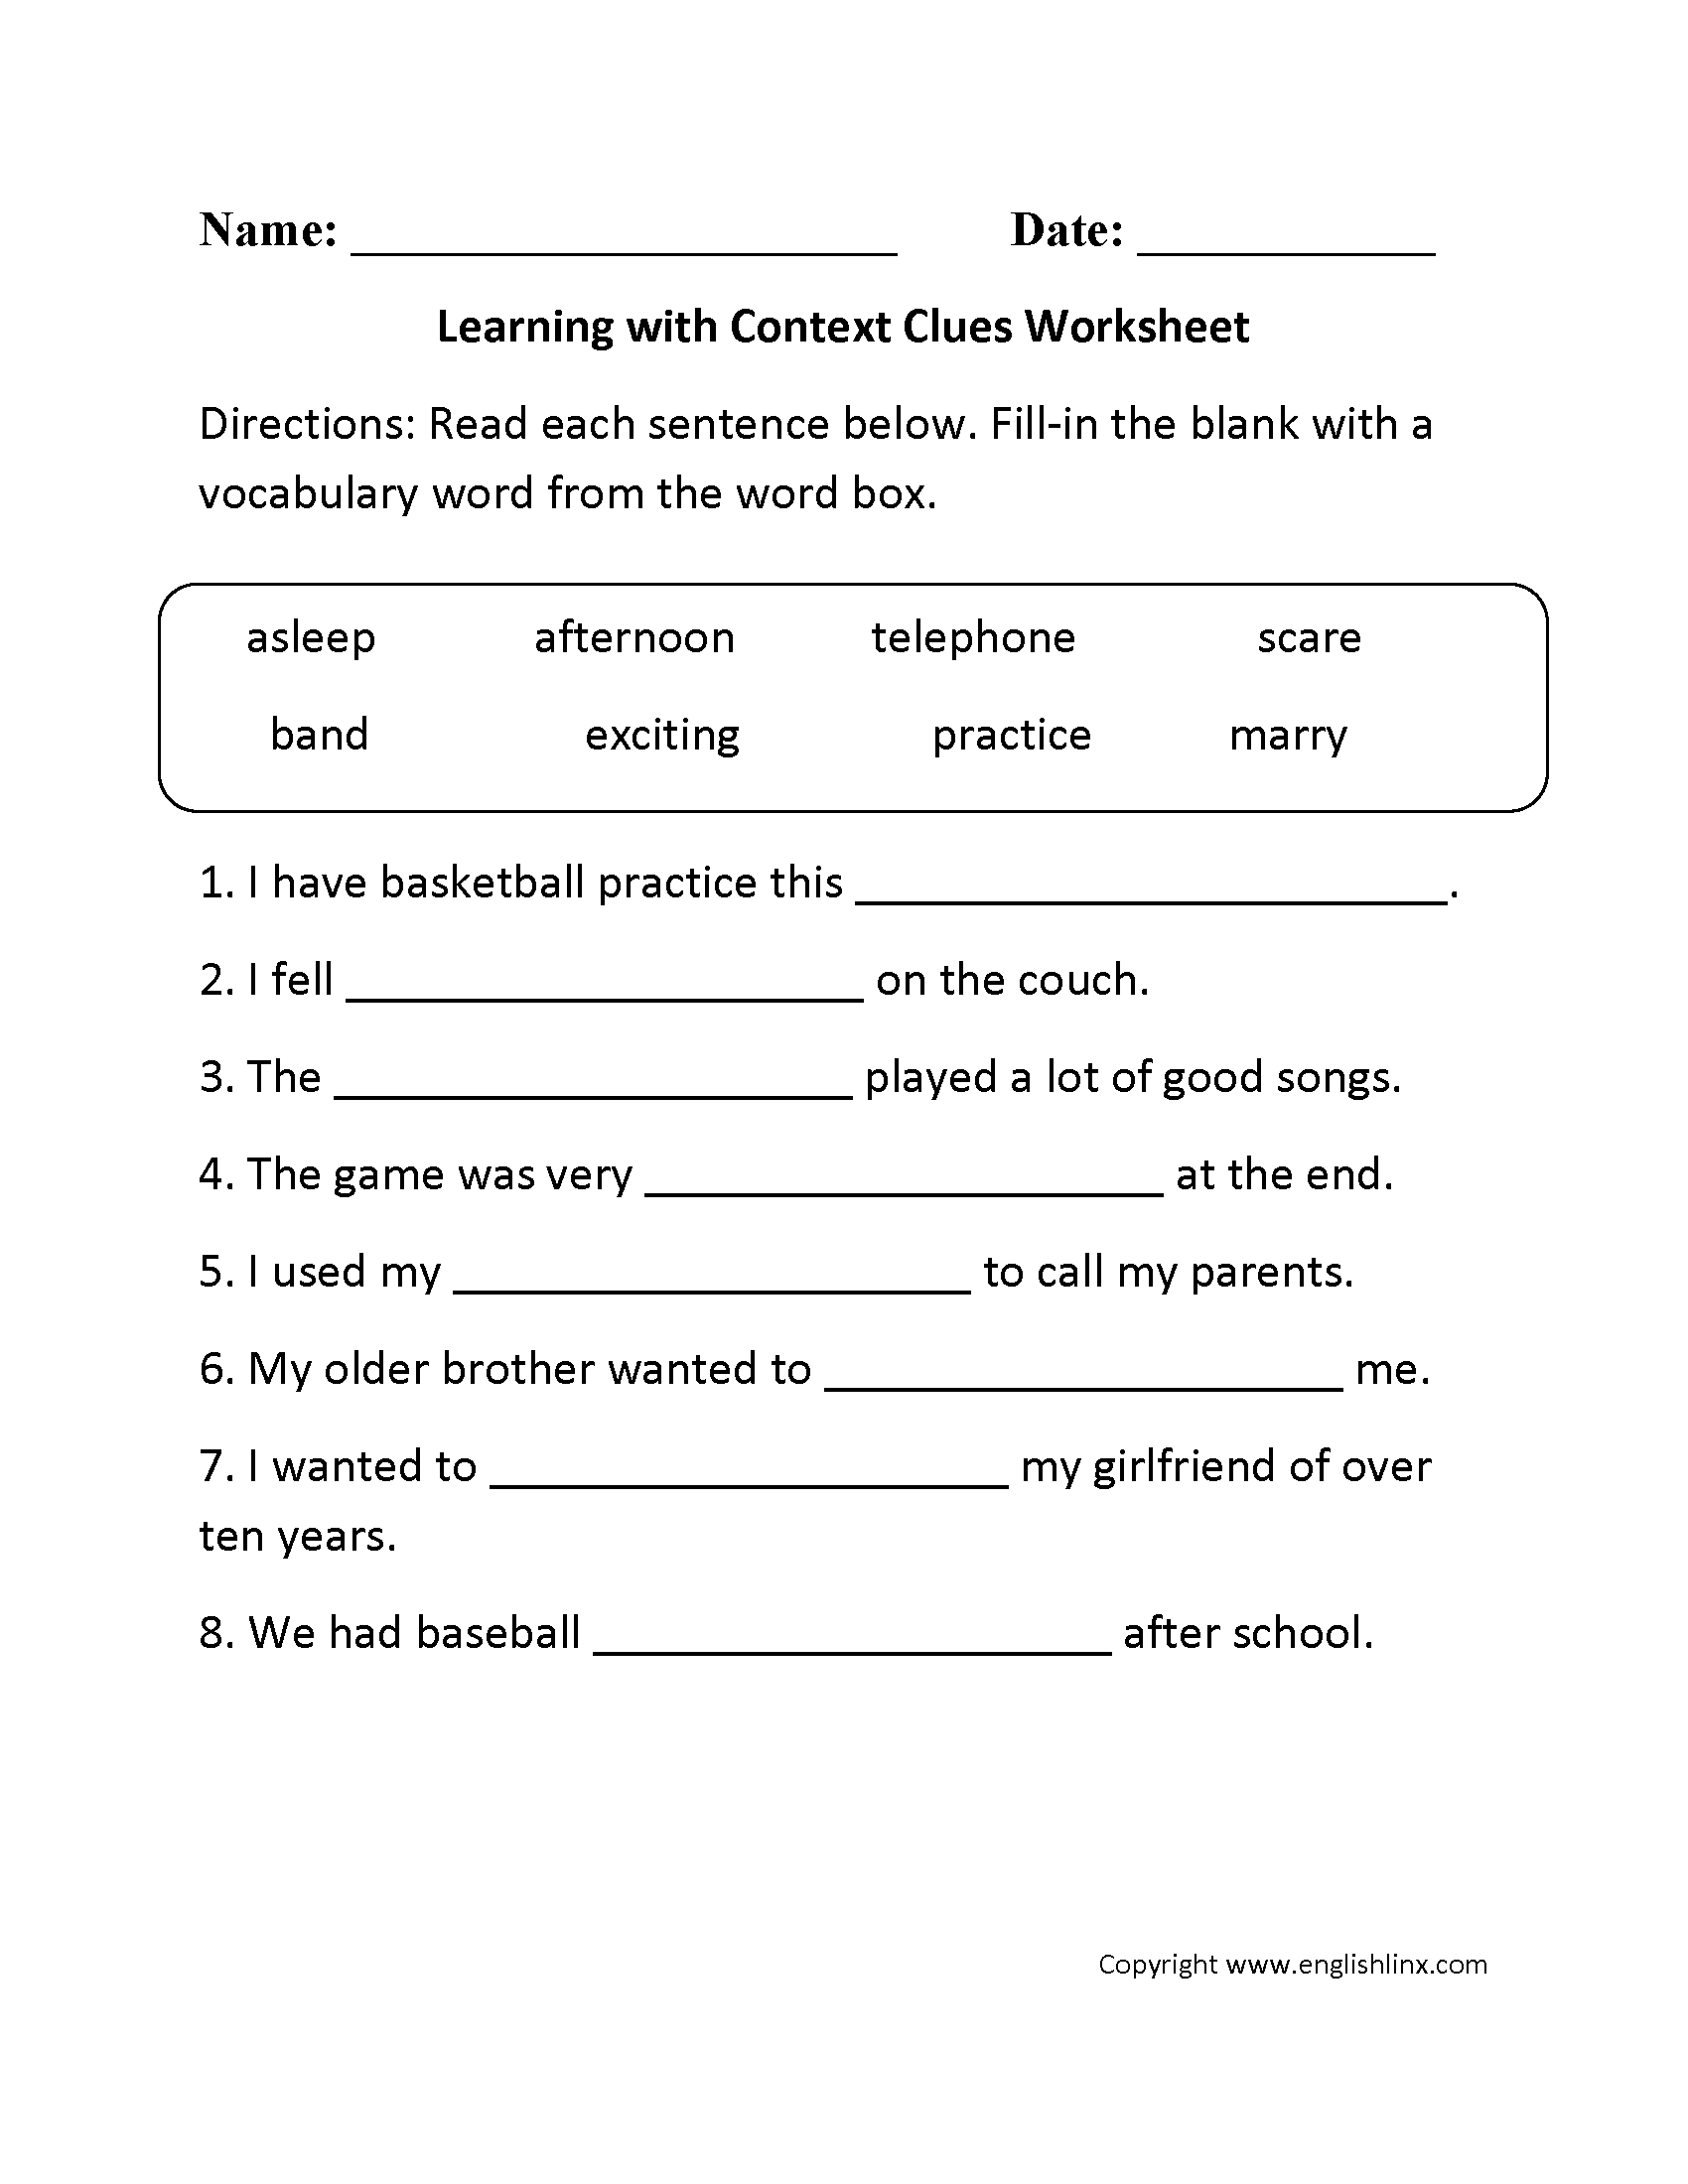 Reading Worksheets – Context Clues Worksheets 3rd Grade